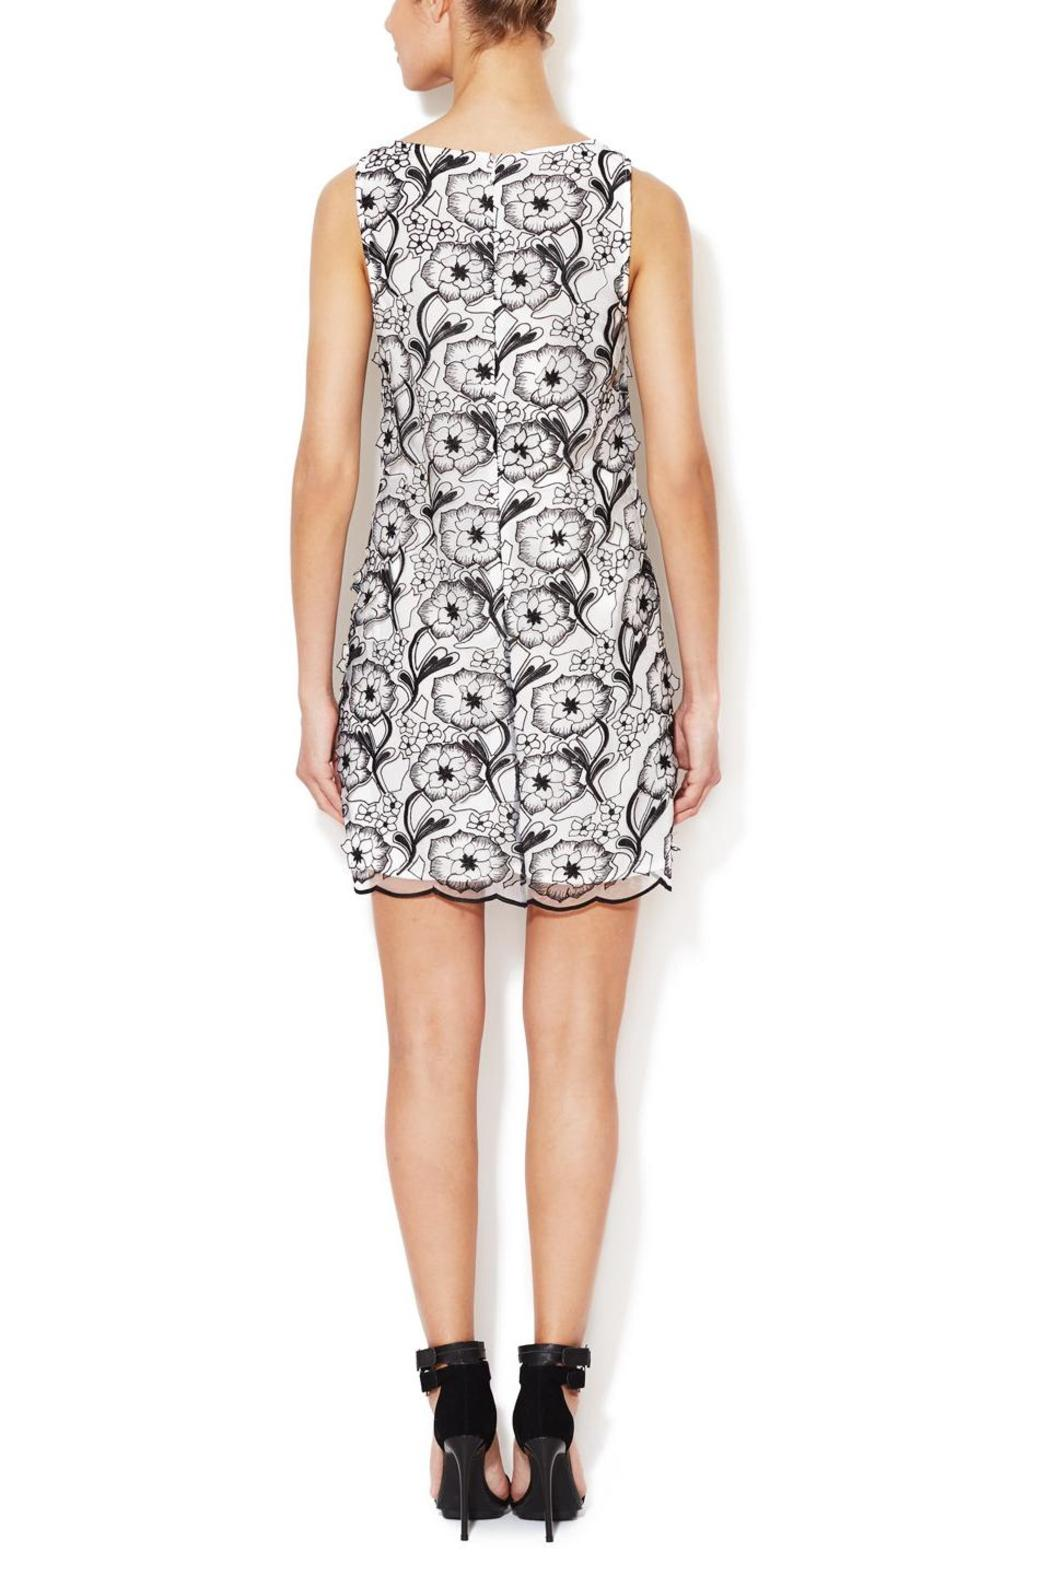 Erin Fetherston 3D Floral Dress - Front Full Image